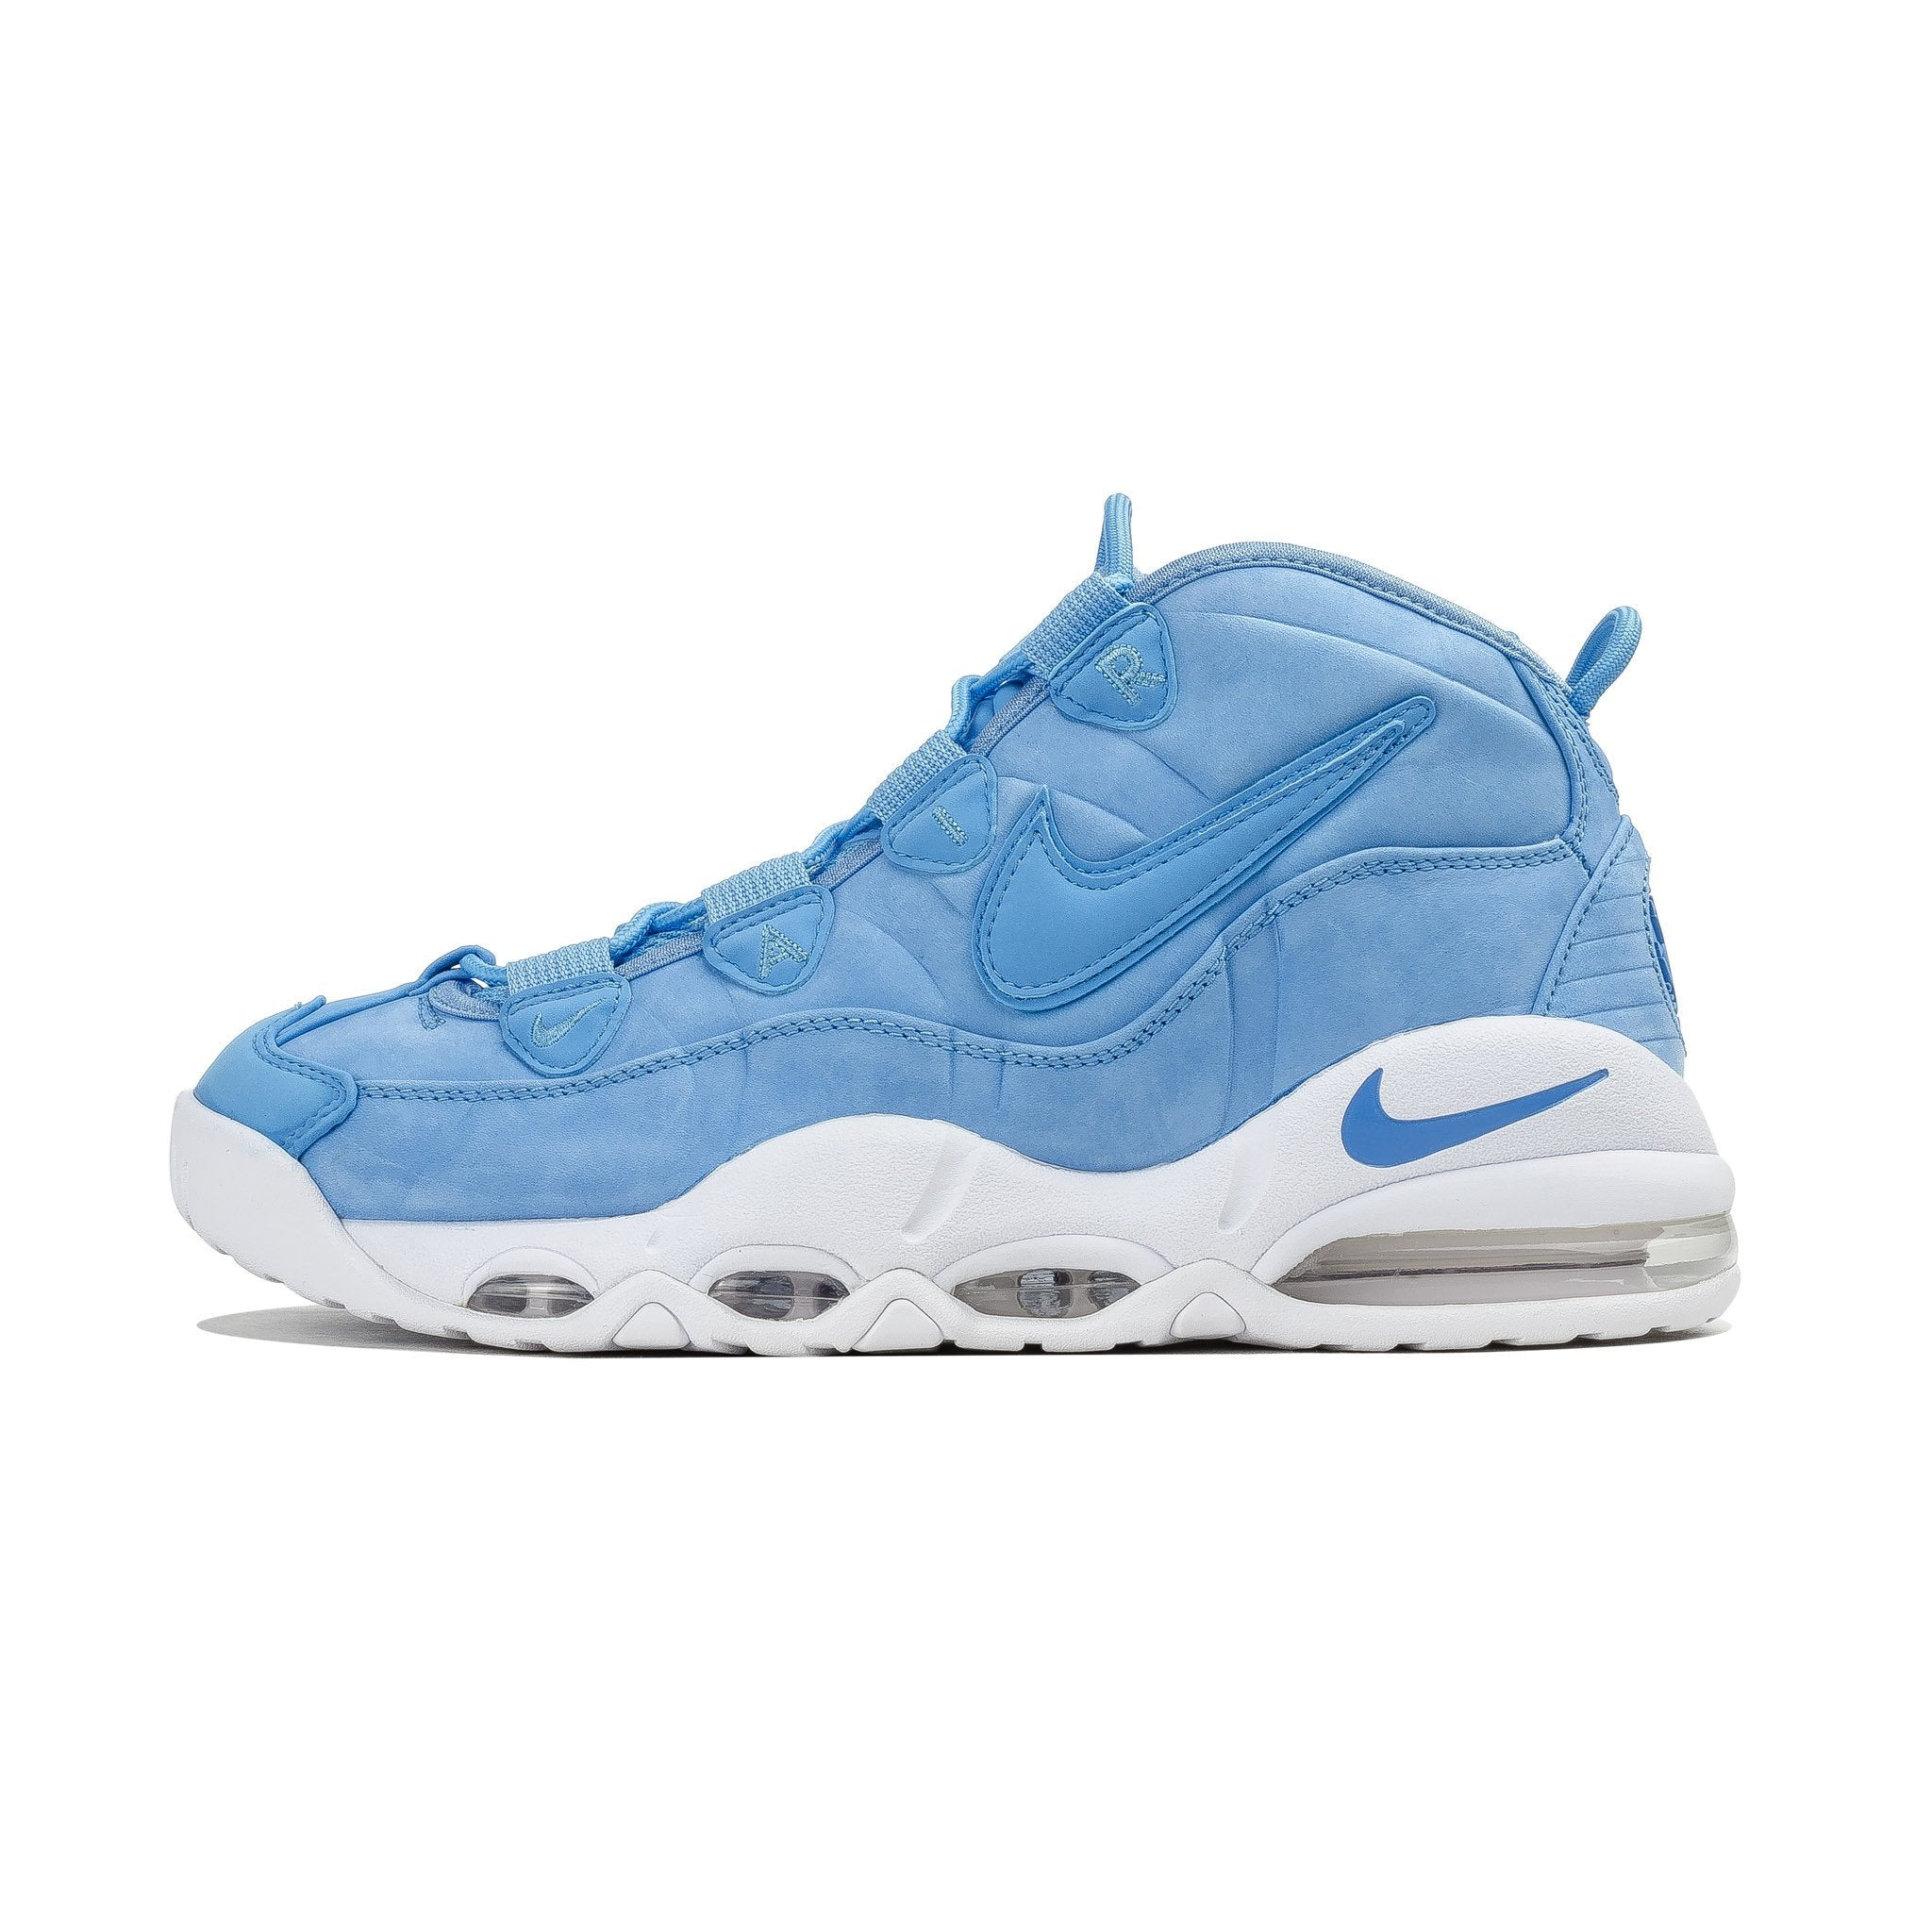 Air Max Uptempo 95 AS QS 922932-400